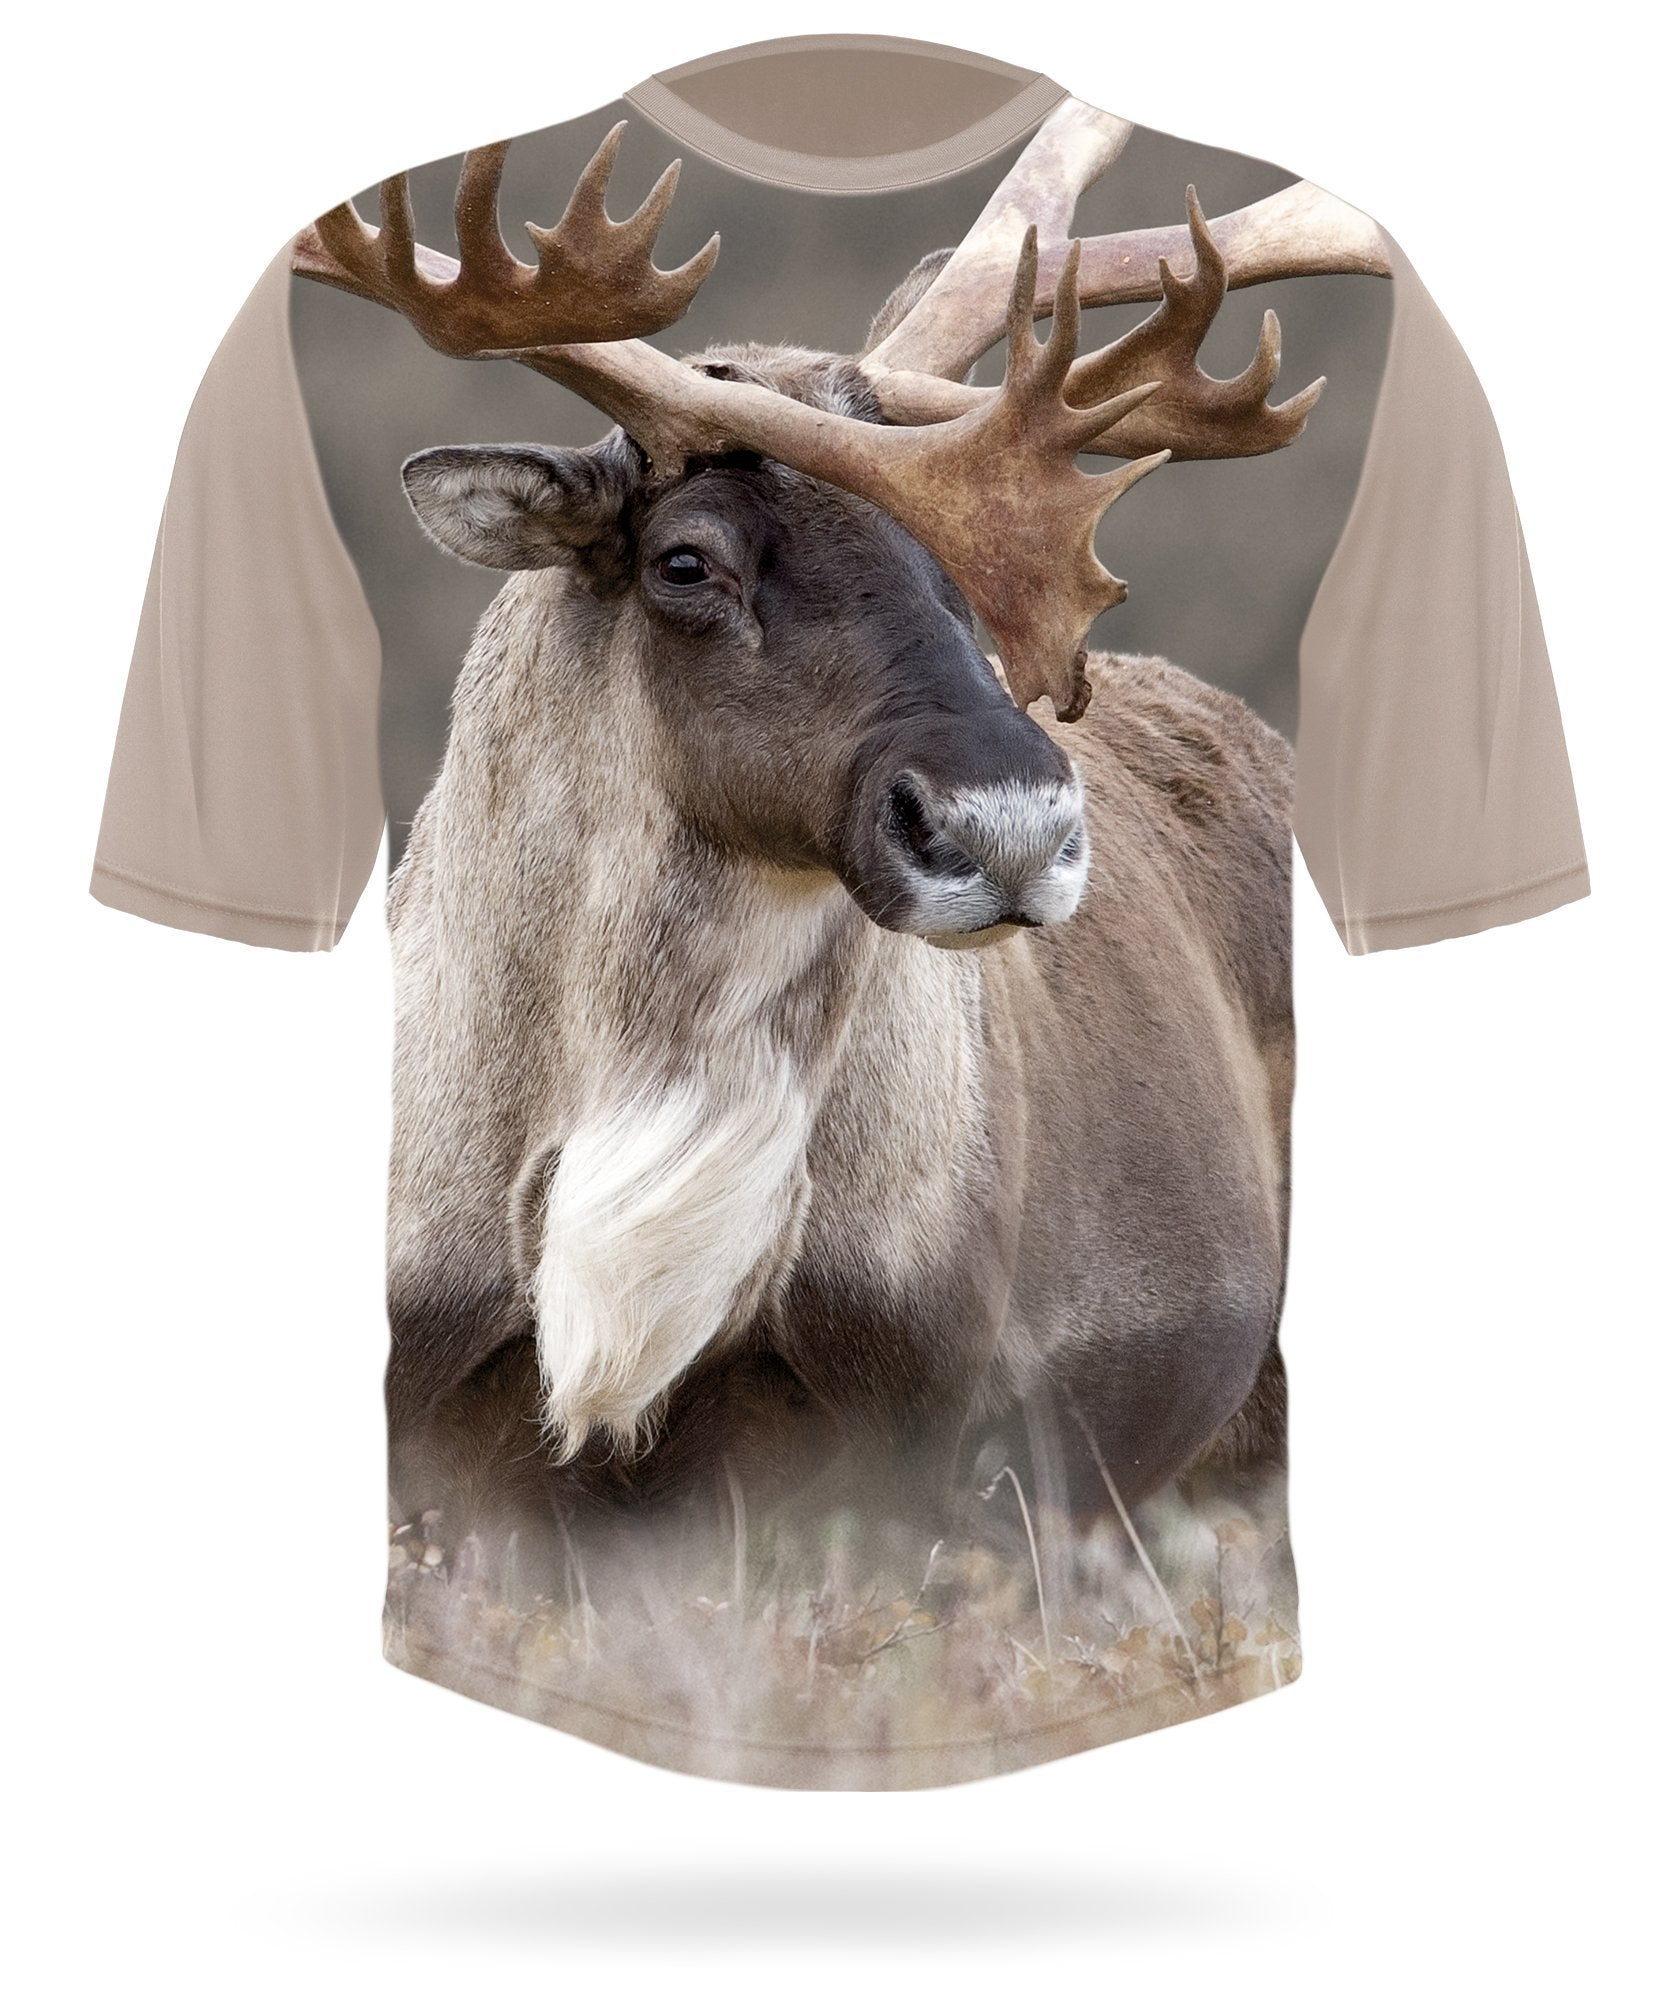 Caribou T-shirt Short Sleeve - HILLMAN® hunting gear